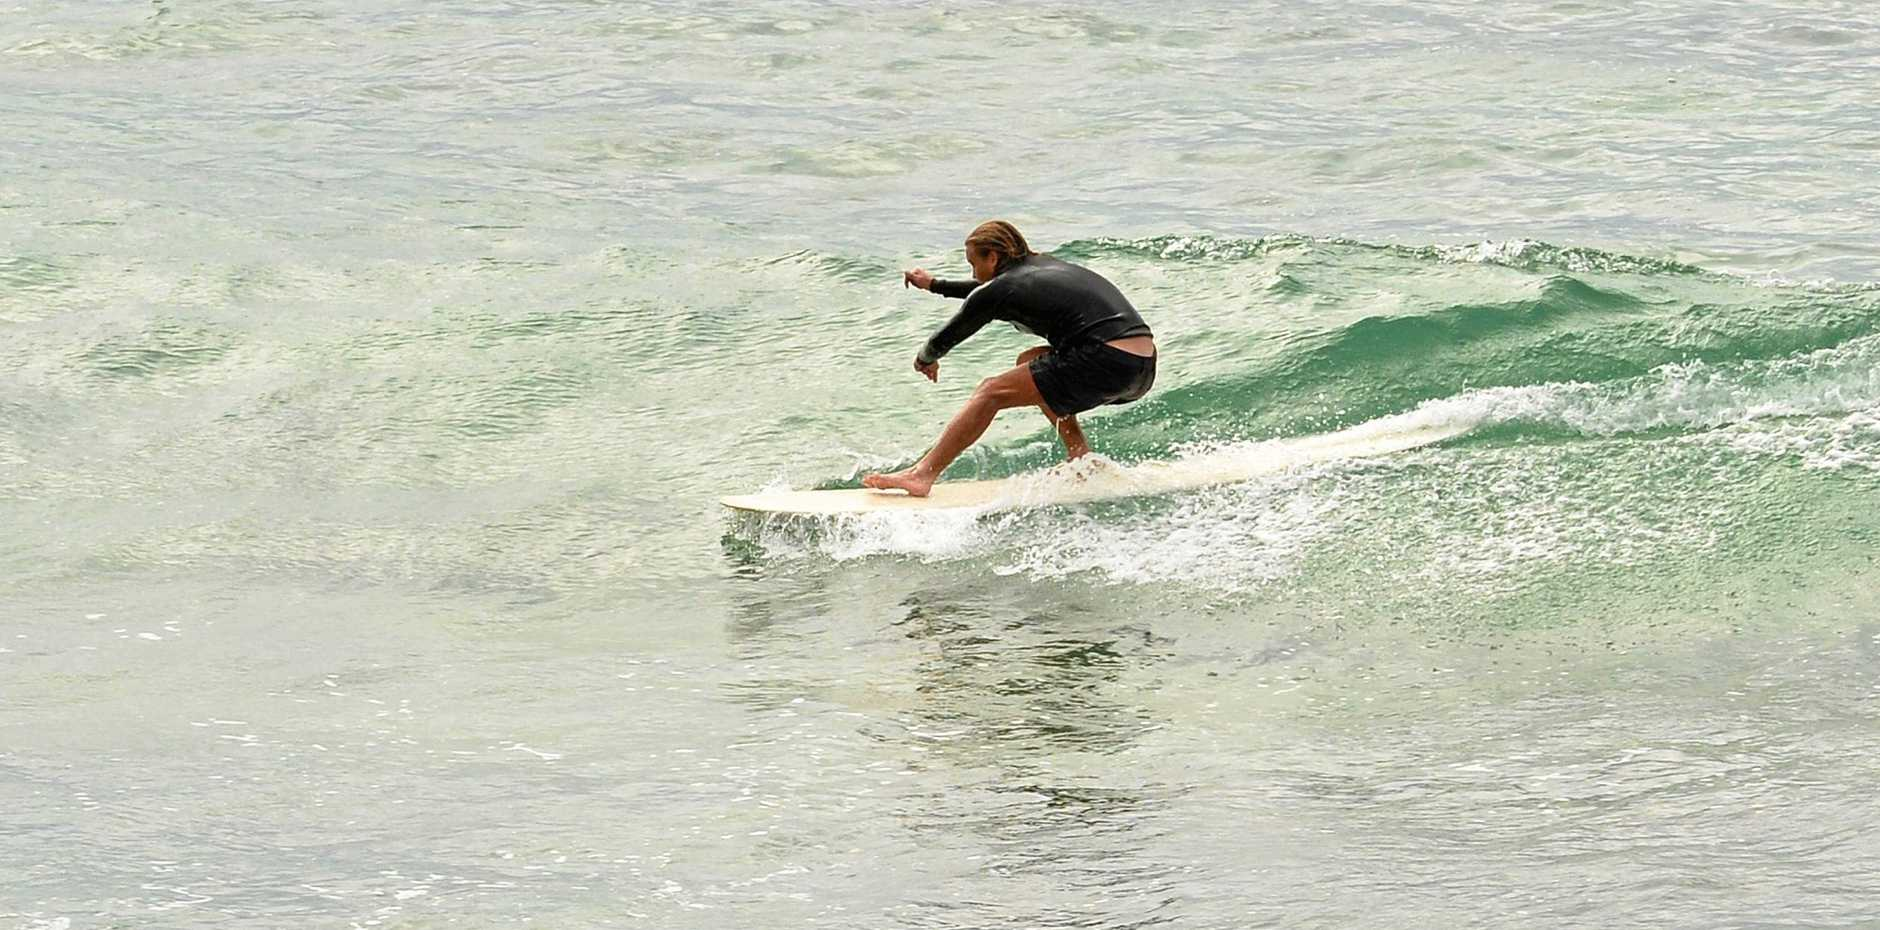 It's going to be a struggle to find a wave worth surfing on the Sunshine Coast this weekend.